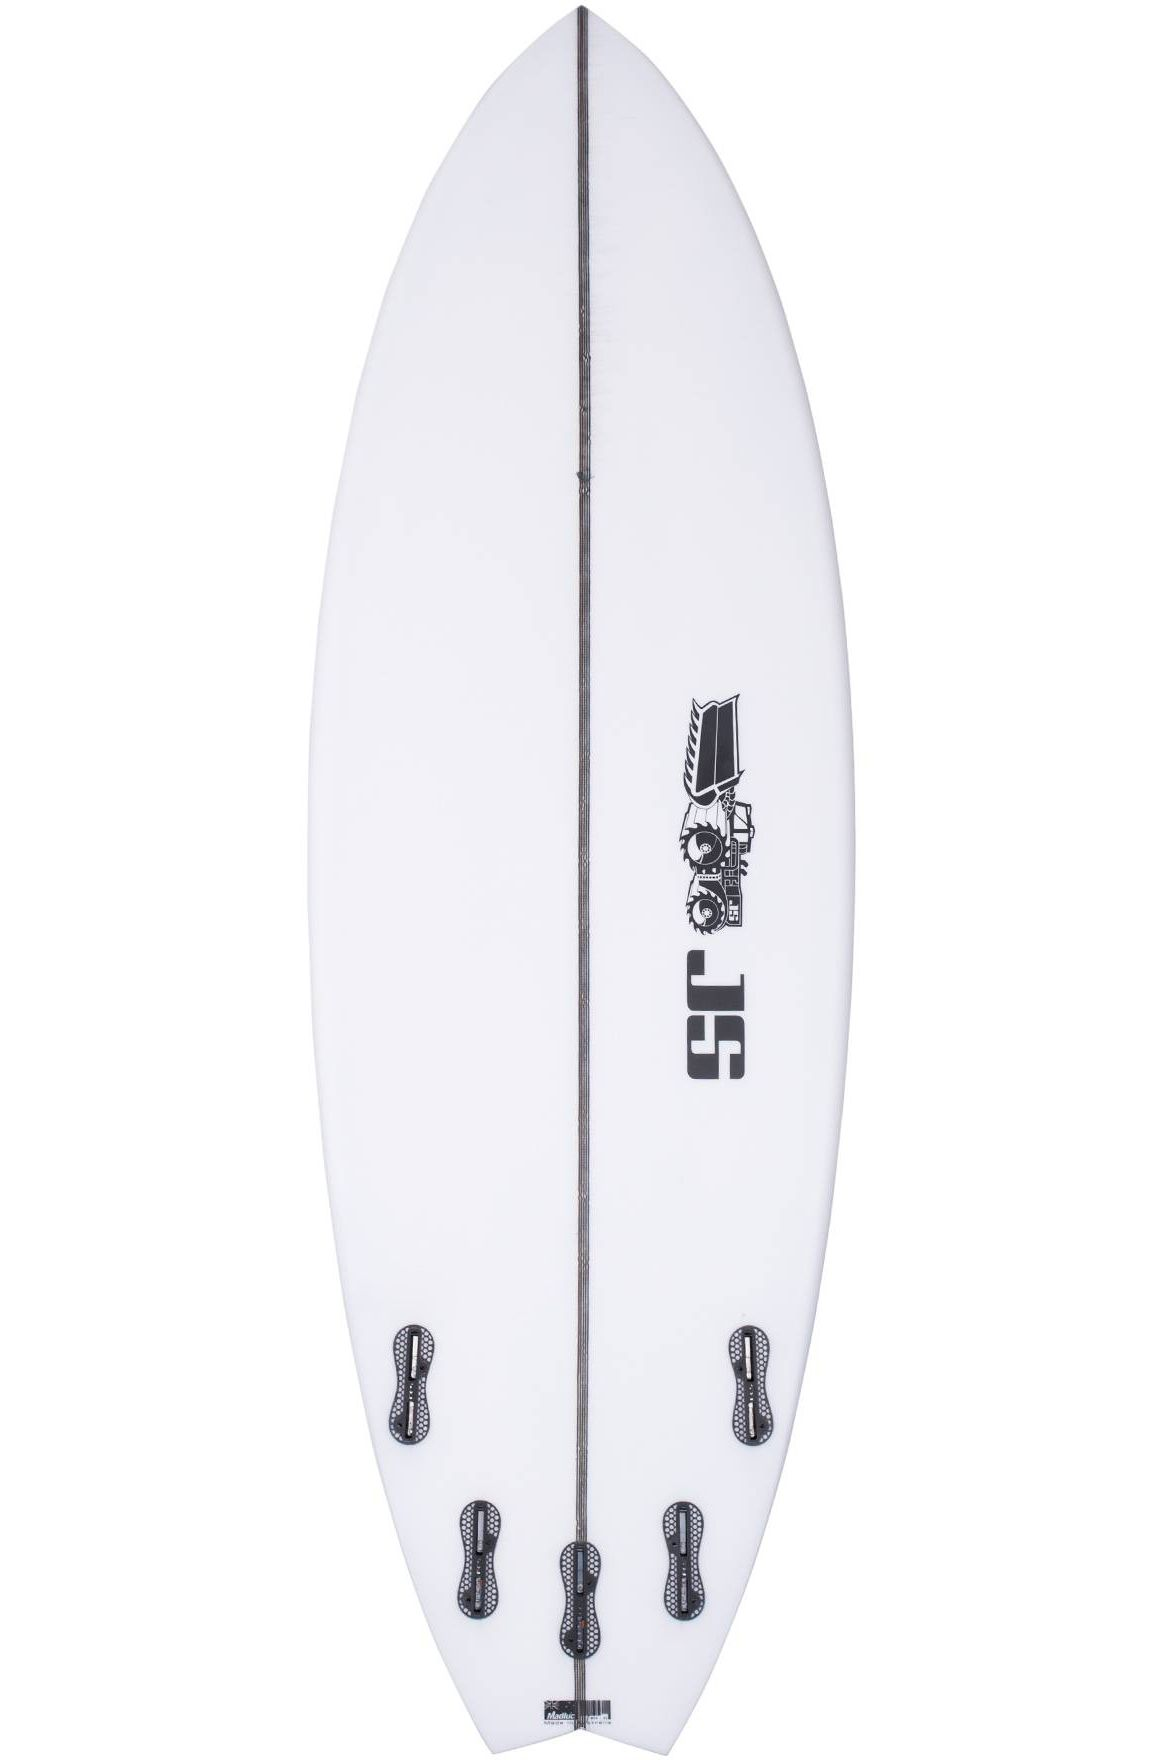 Prancha Surf JS PSYCHO NITRO 5'10 Swallow Tail - White FCS II Multisystem 5ft10